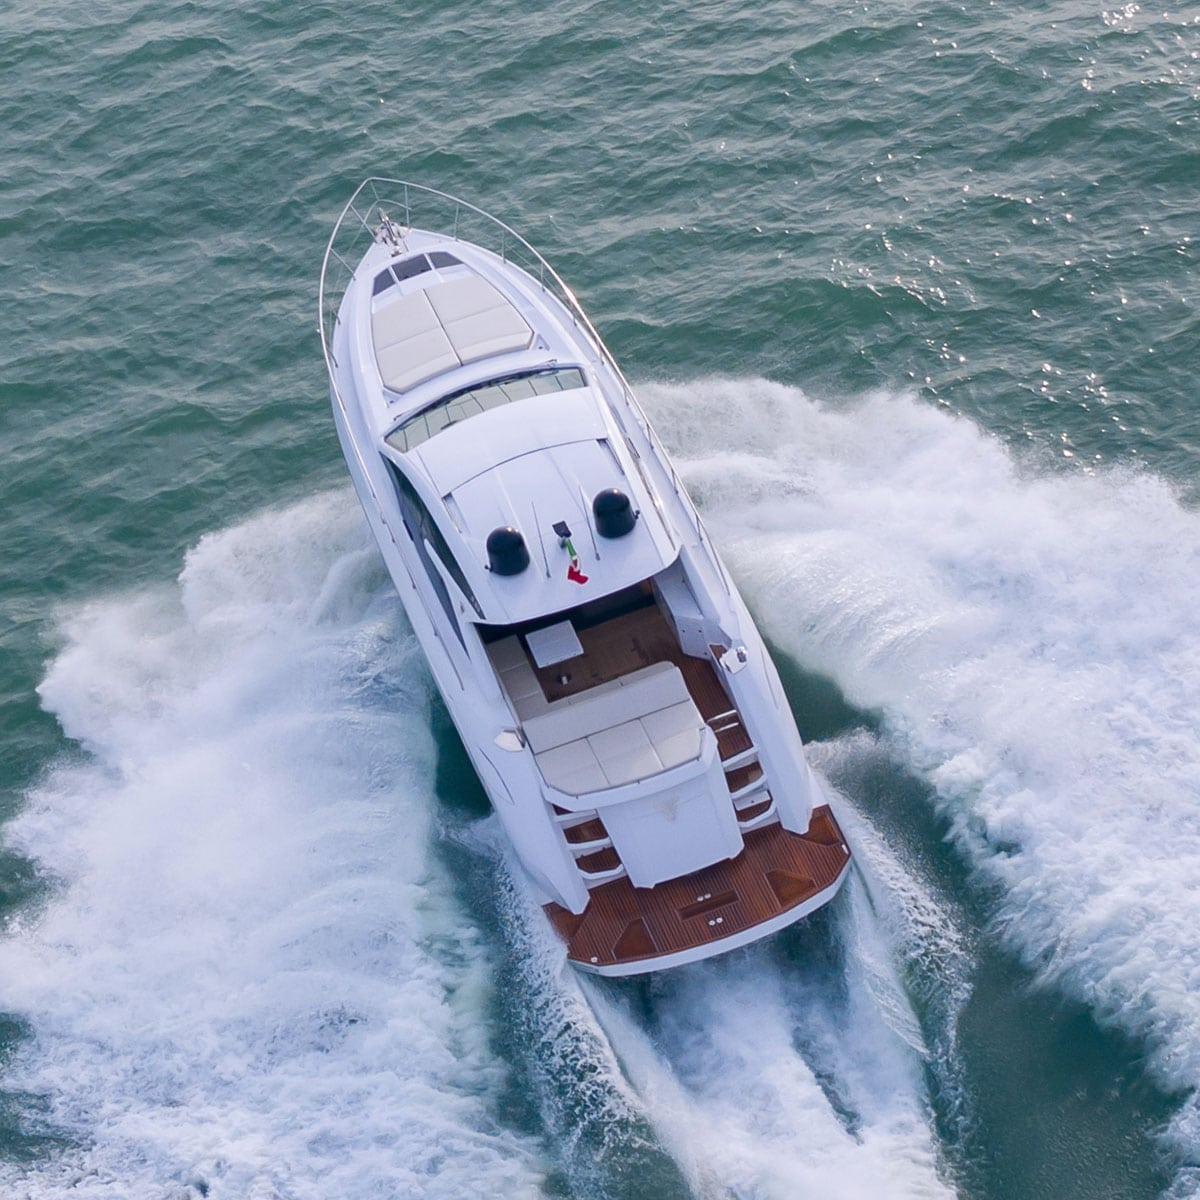 Sport 55 Yacht with Ips Propulsion